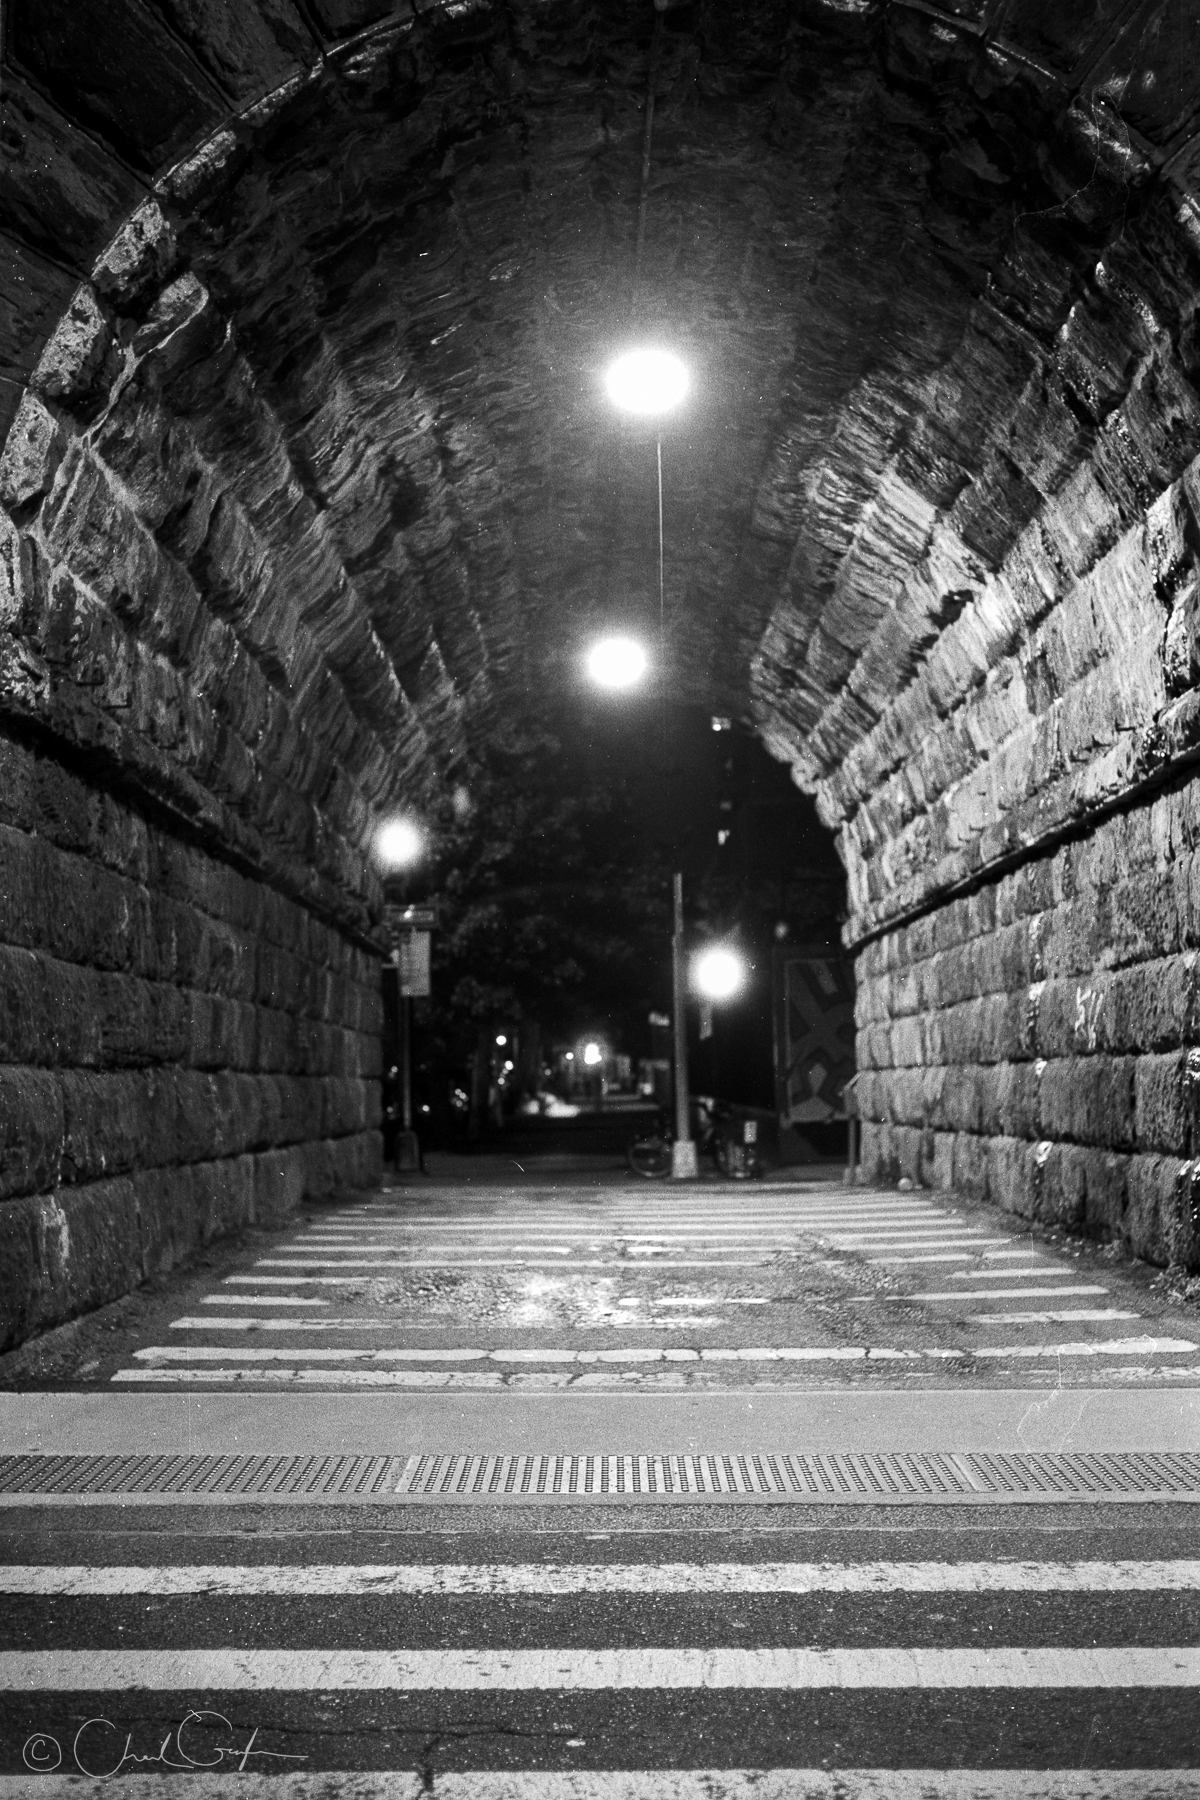 Park Avenue Tunnel at Night (Image by Chad Gayle)